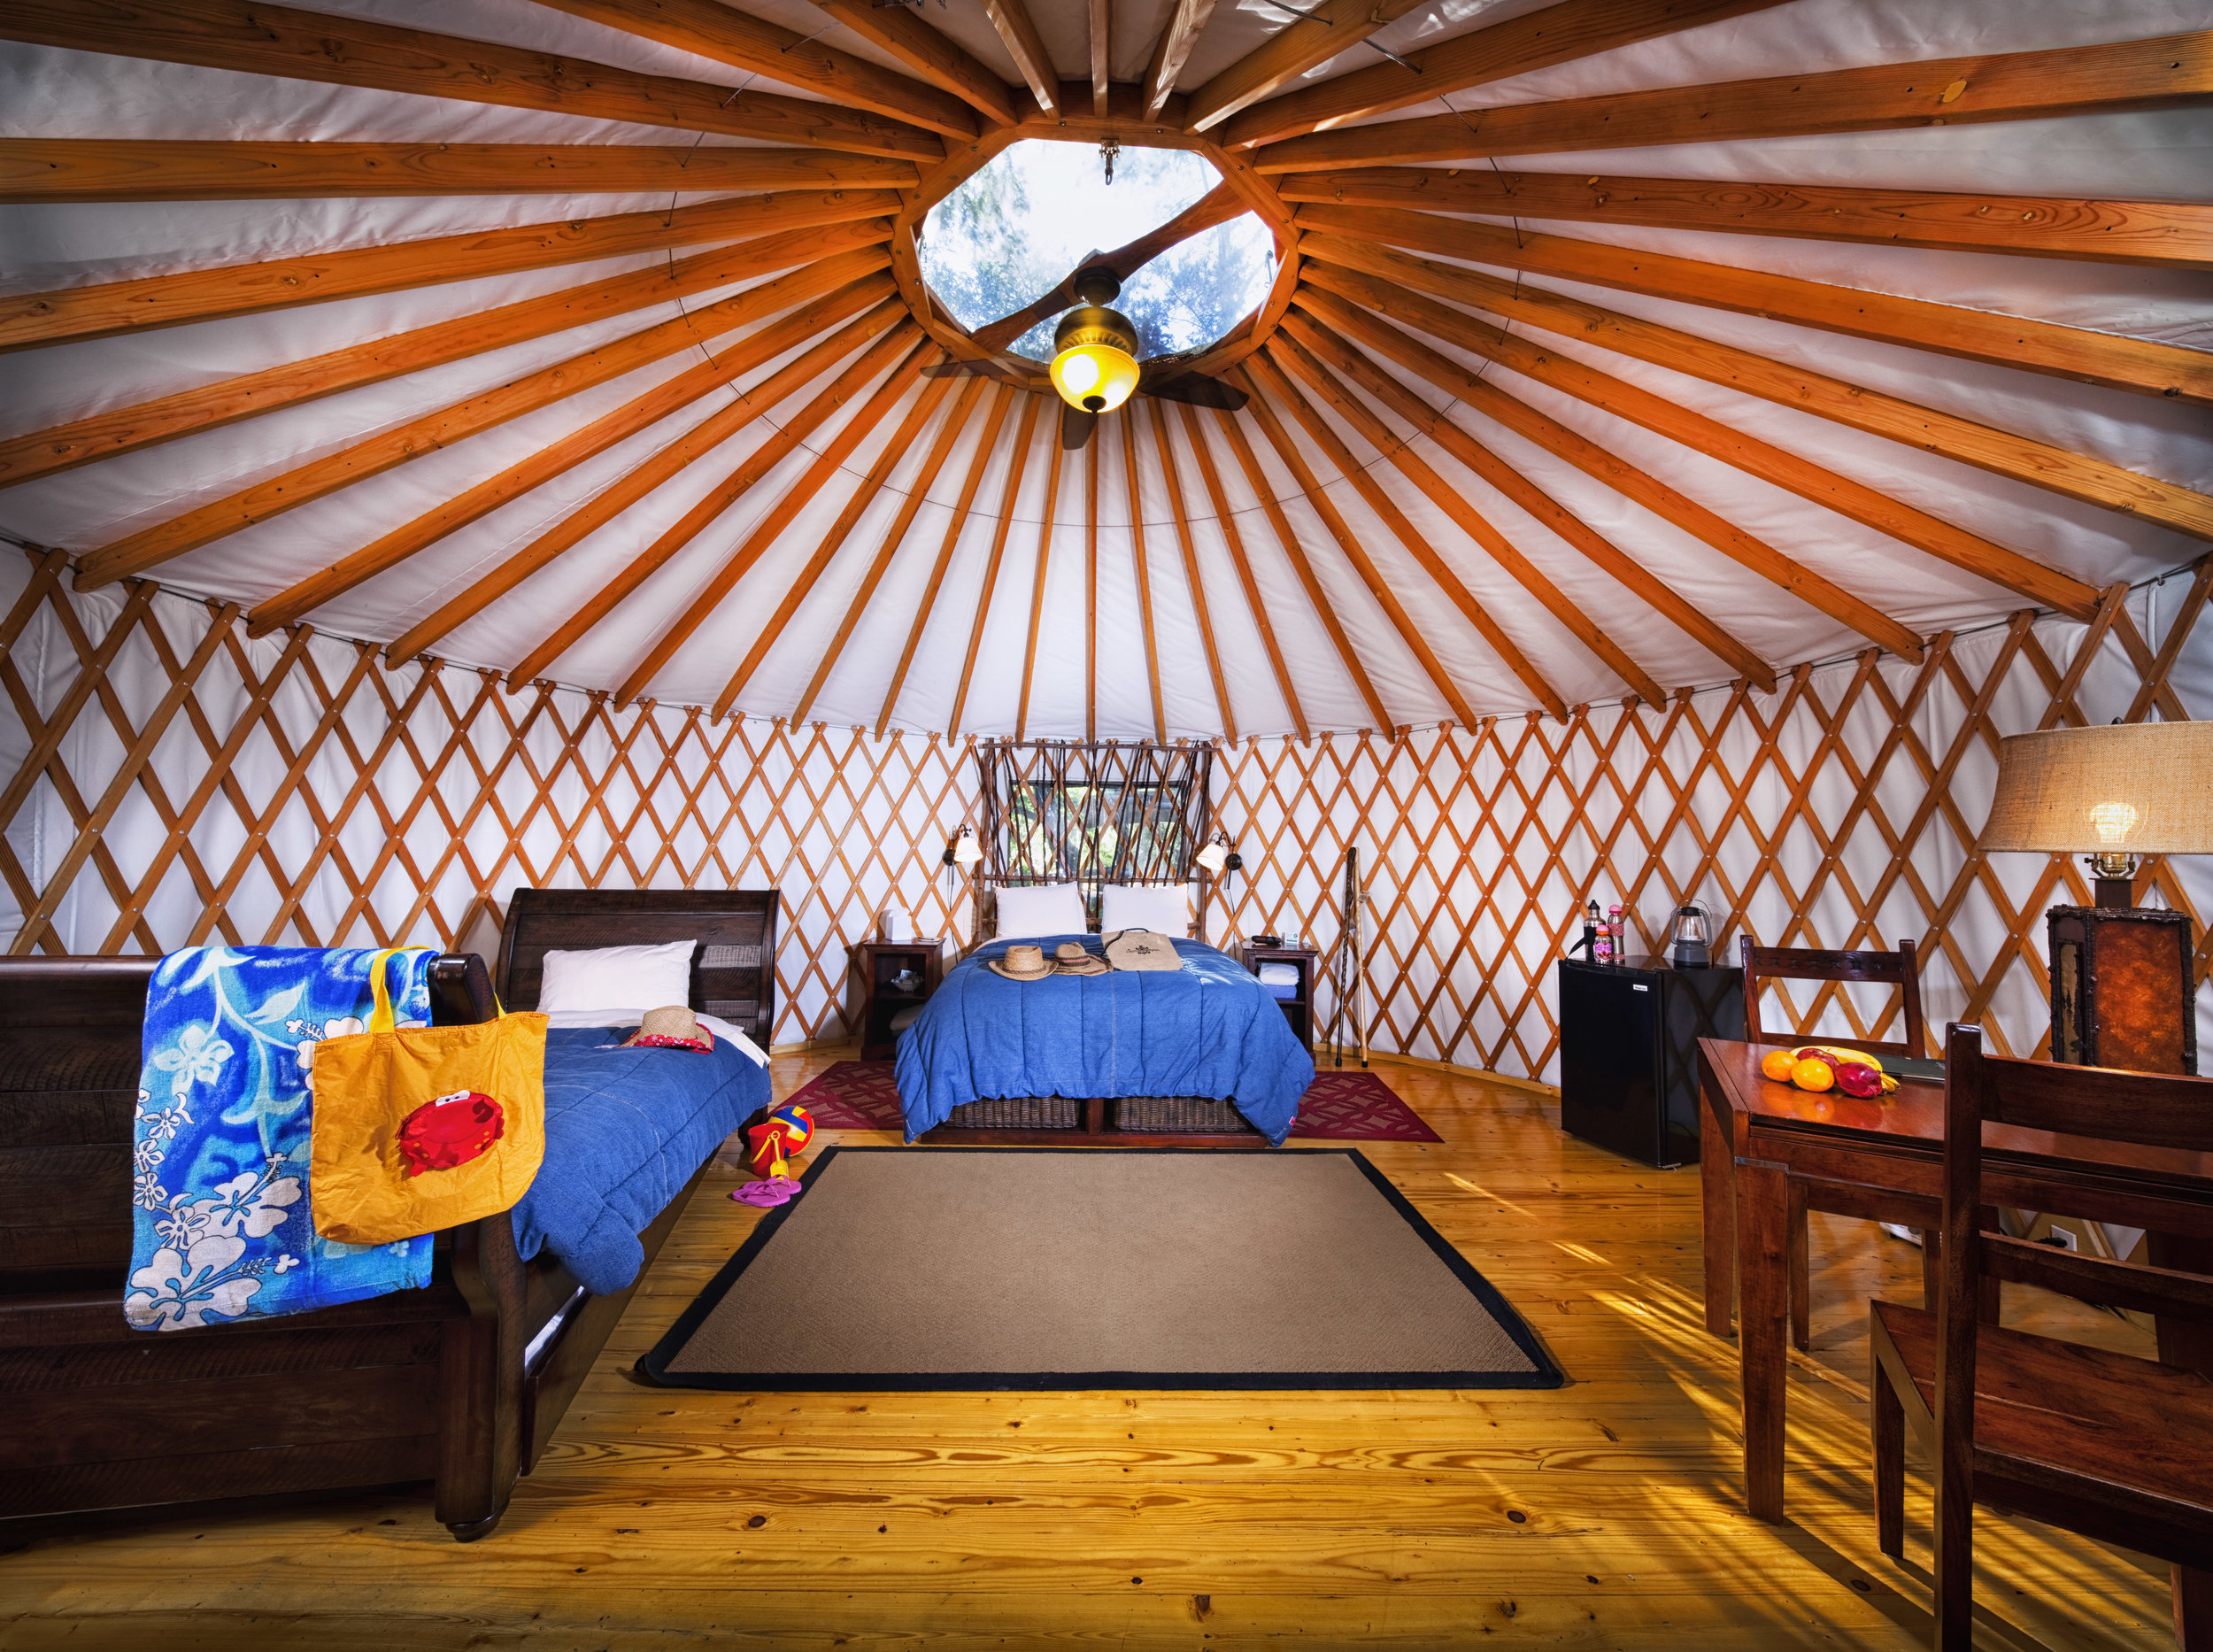 Adventure yurt$1800 / 2 nights - Sleeps 2 adults + 2-3 childrenFurnishings inside the Adventure Yurt include one queen bed and one twin day bed with twin trundle, which can accommodate a family of 4 comfortably. Electricity is provided inside the yurt and bathhouse amenities are located only steps away. As with every accommodation at El Capitan Canyon, the new Adventure Yurt also includes a private picnic table and firepit with removable grill for both grill dining and a cozy campfire.